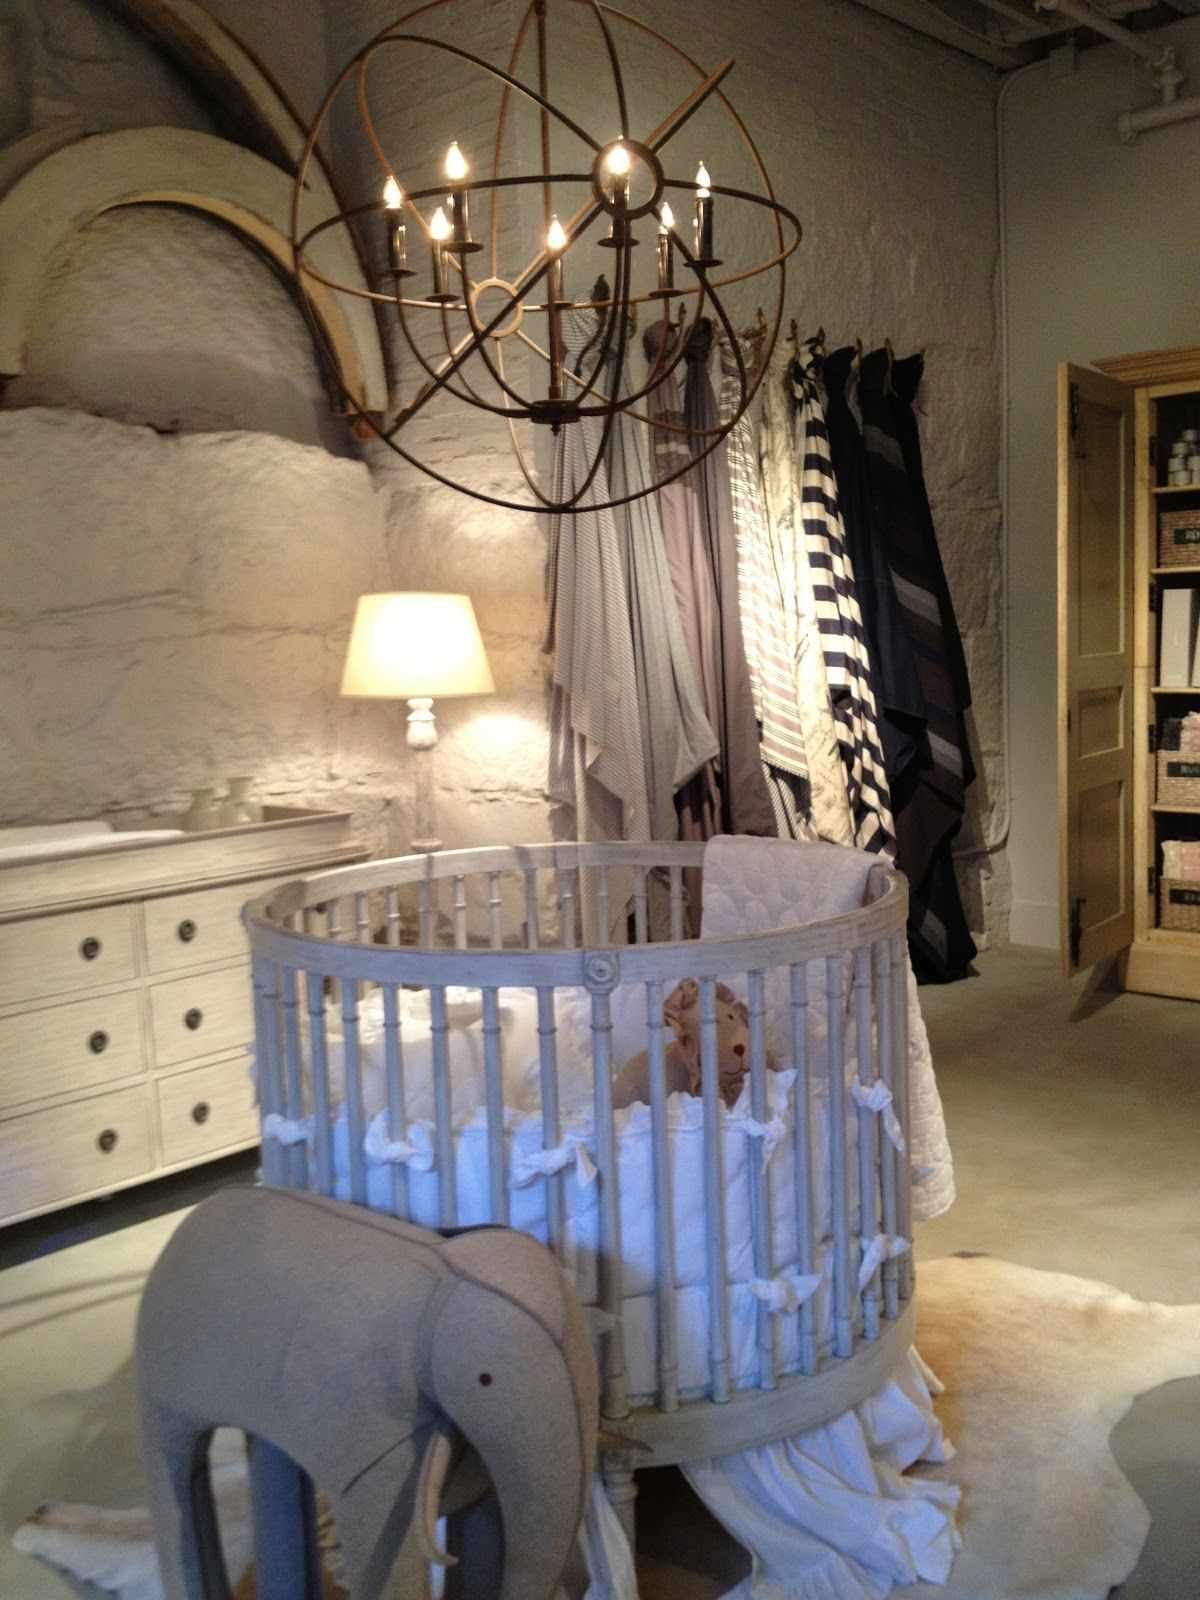 Ellery round crib for sale - Luxury Dimgray Baby Cribs Warm Home Room Designed Unique Textured Grey Wall White Skirted Round Crib